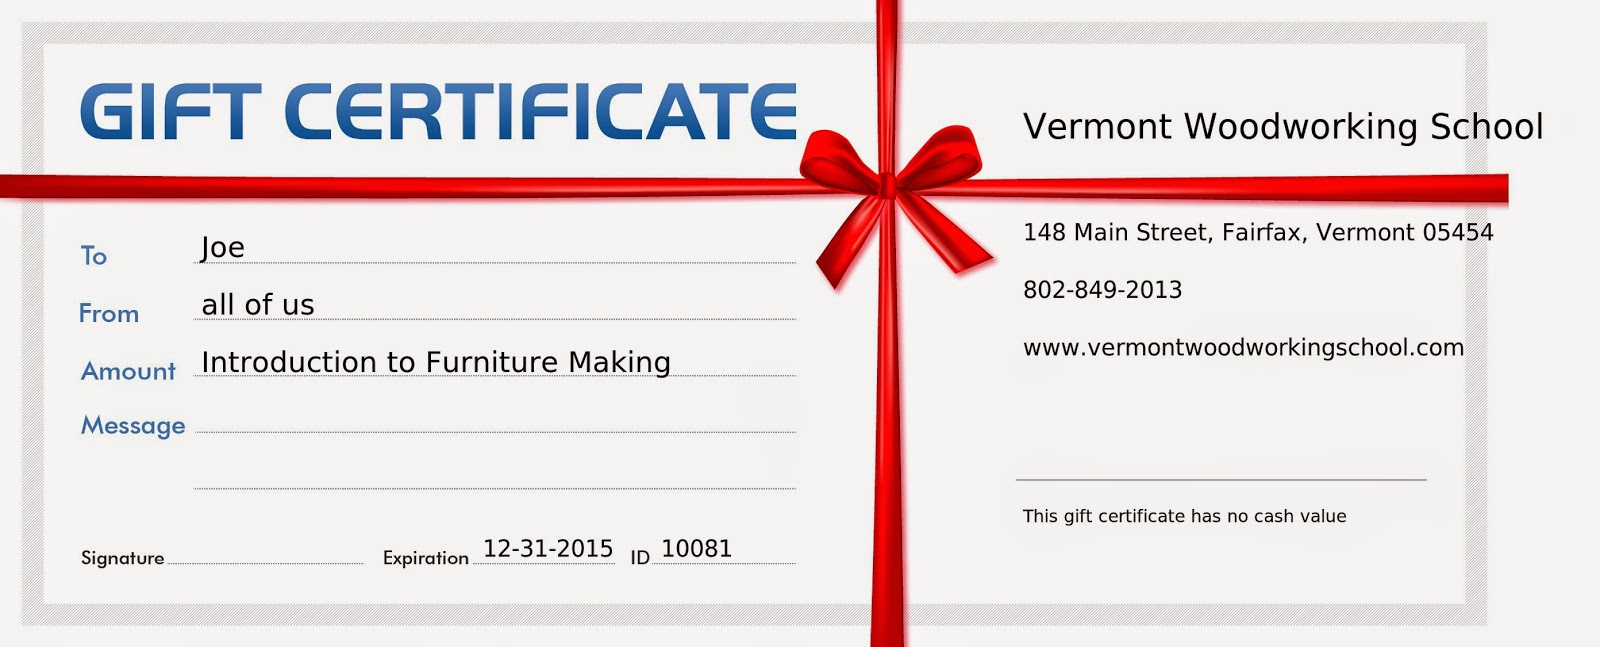 vermont woodworking school blog gift certificates make great presents